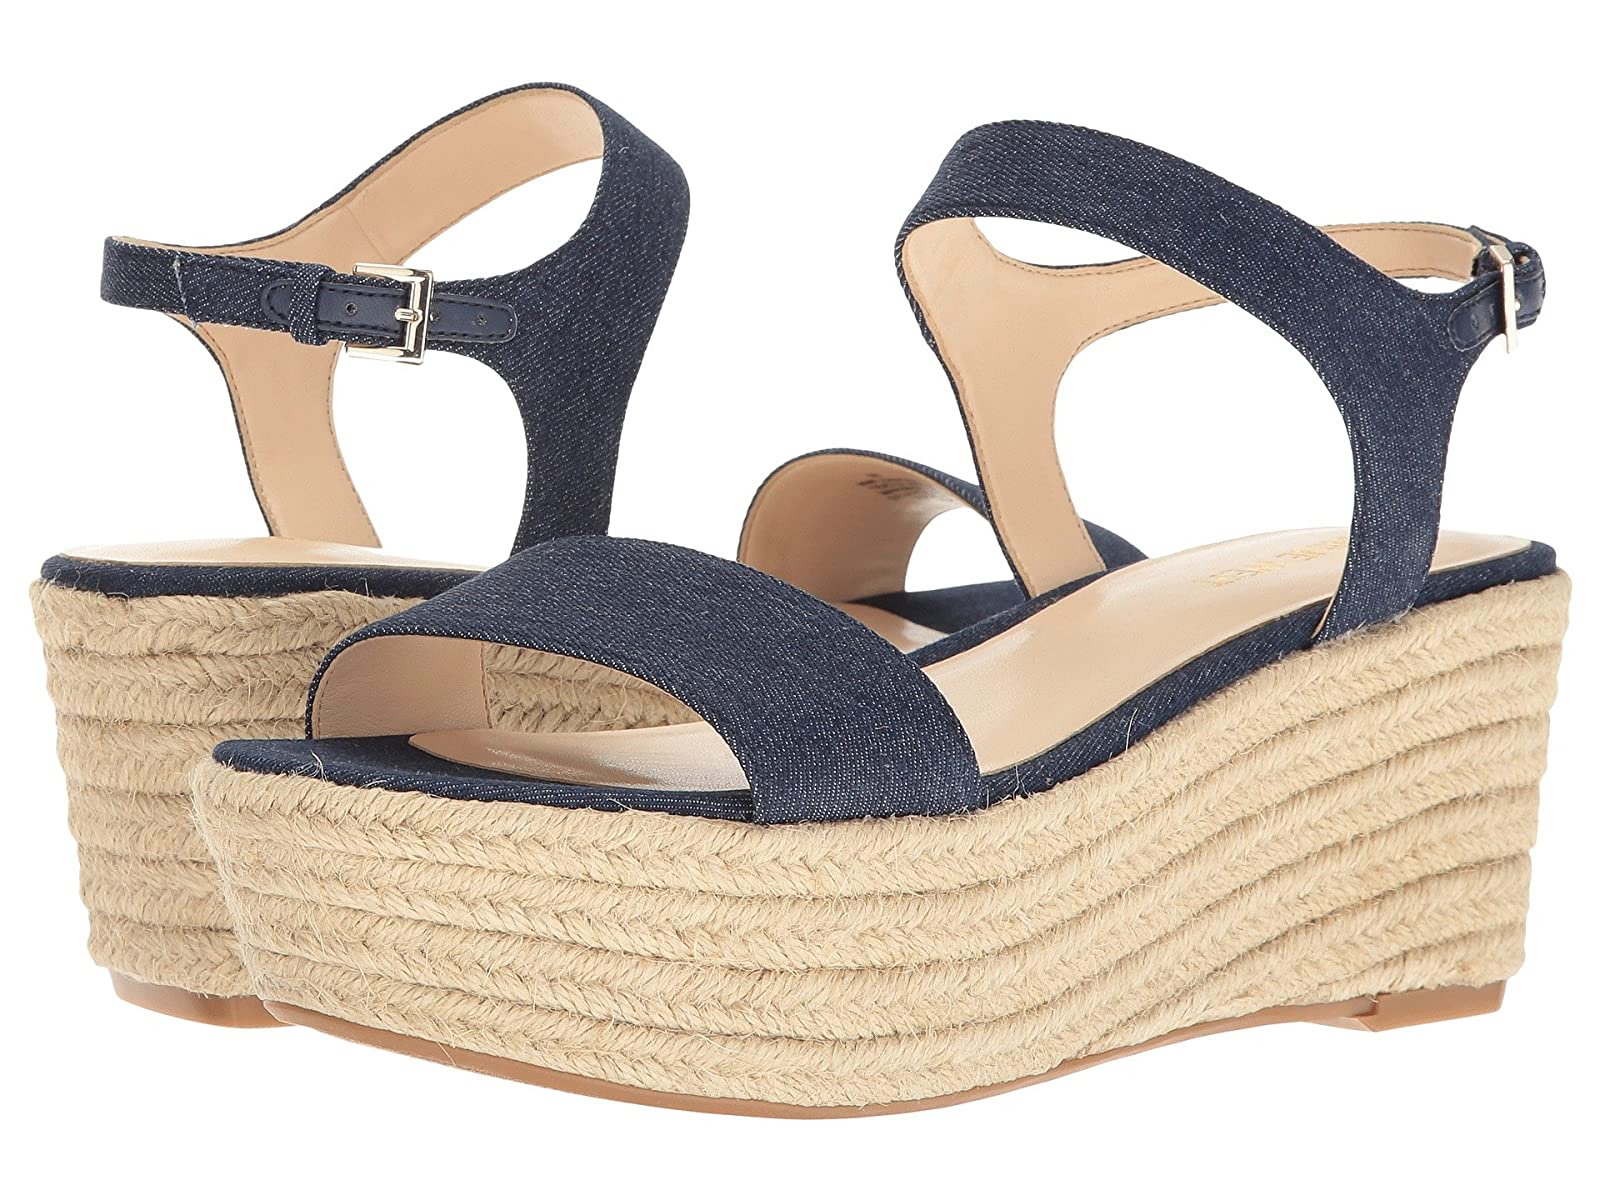 m. / mme neuf m. / mme neuf m. m. m. / mme nine west flownder personnalité 2f915f